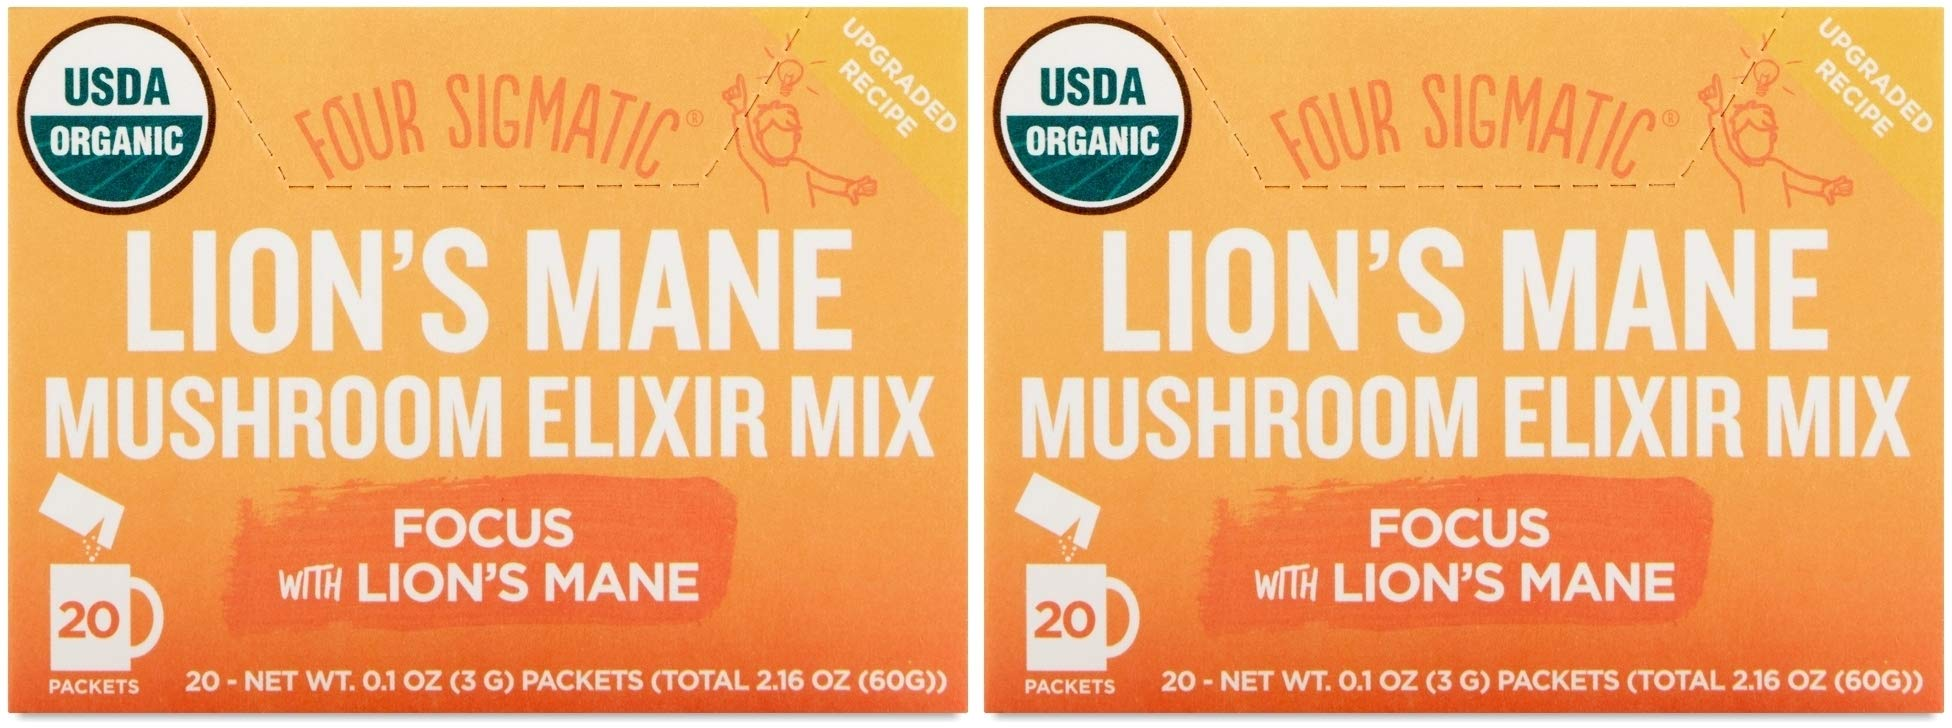 Four Sigmatic Focus with Lion's Mane Mushroom Elixir Mix (Pack of 2) With Mint Leaf, Star Anise and Stevia, 20 Count Each